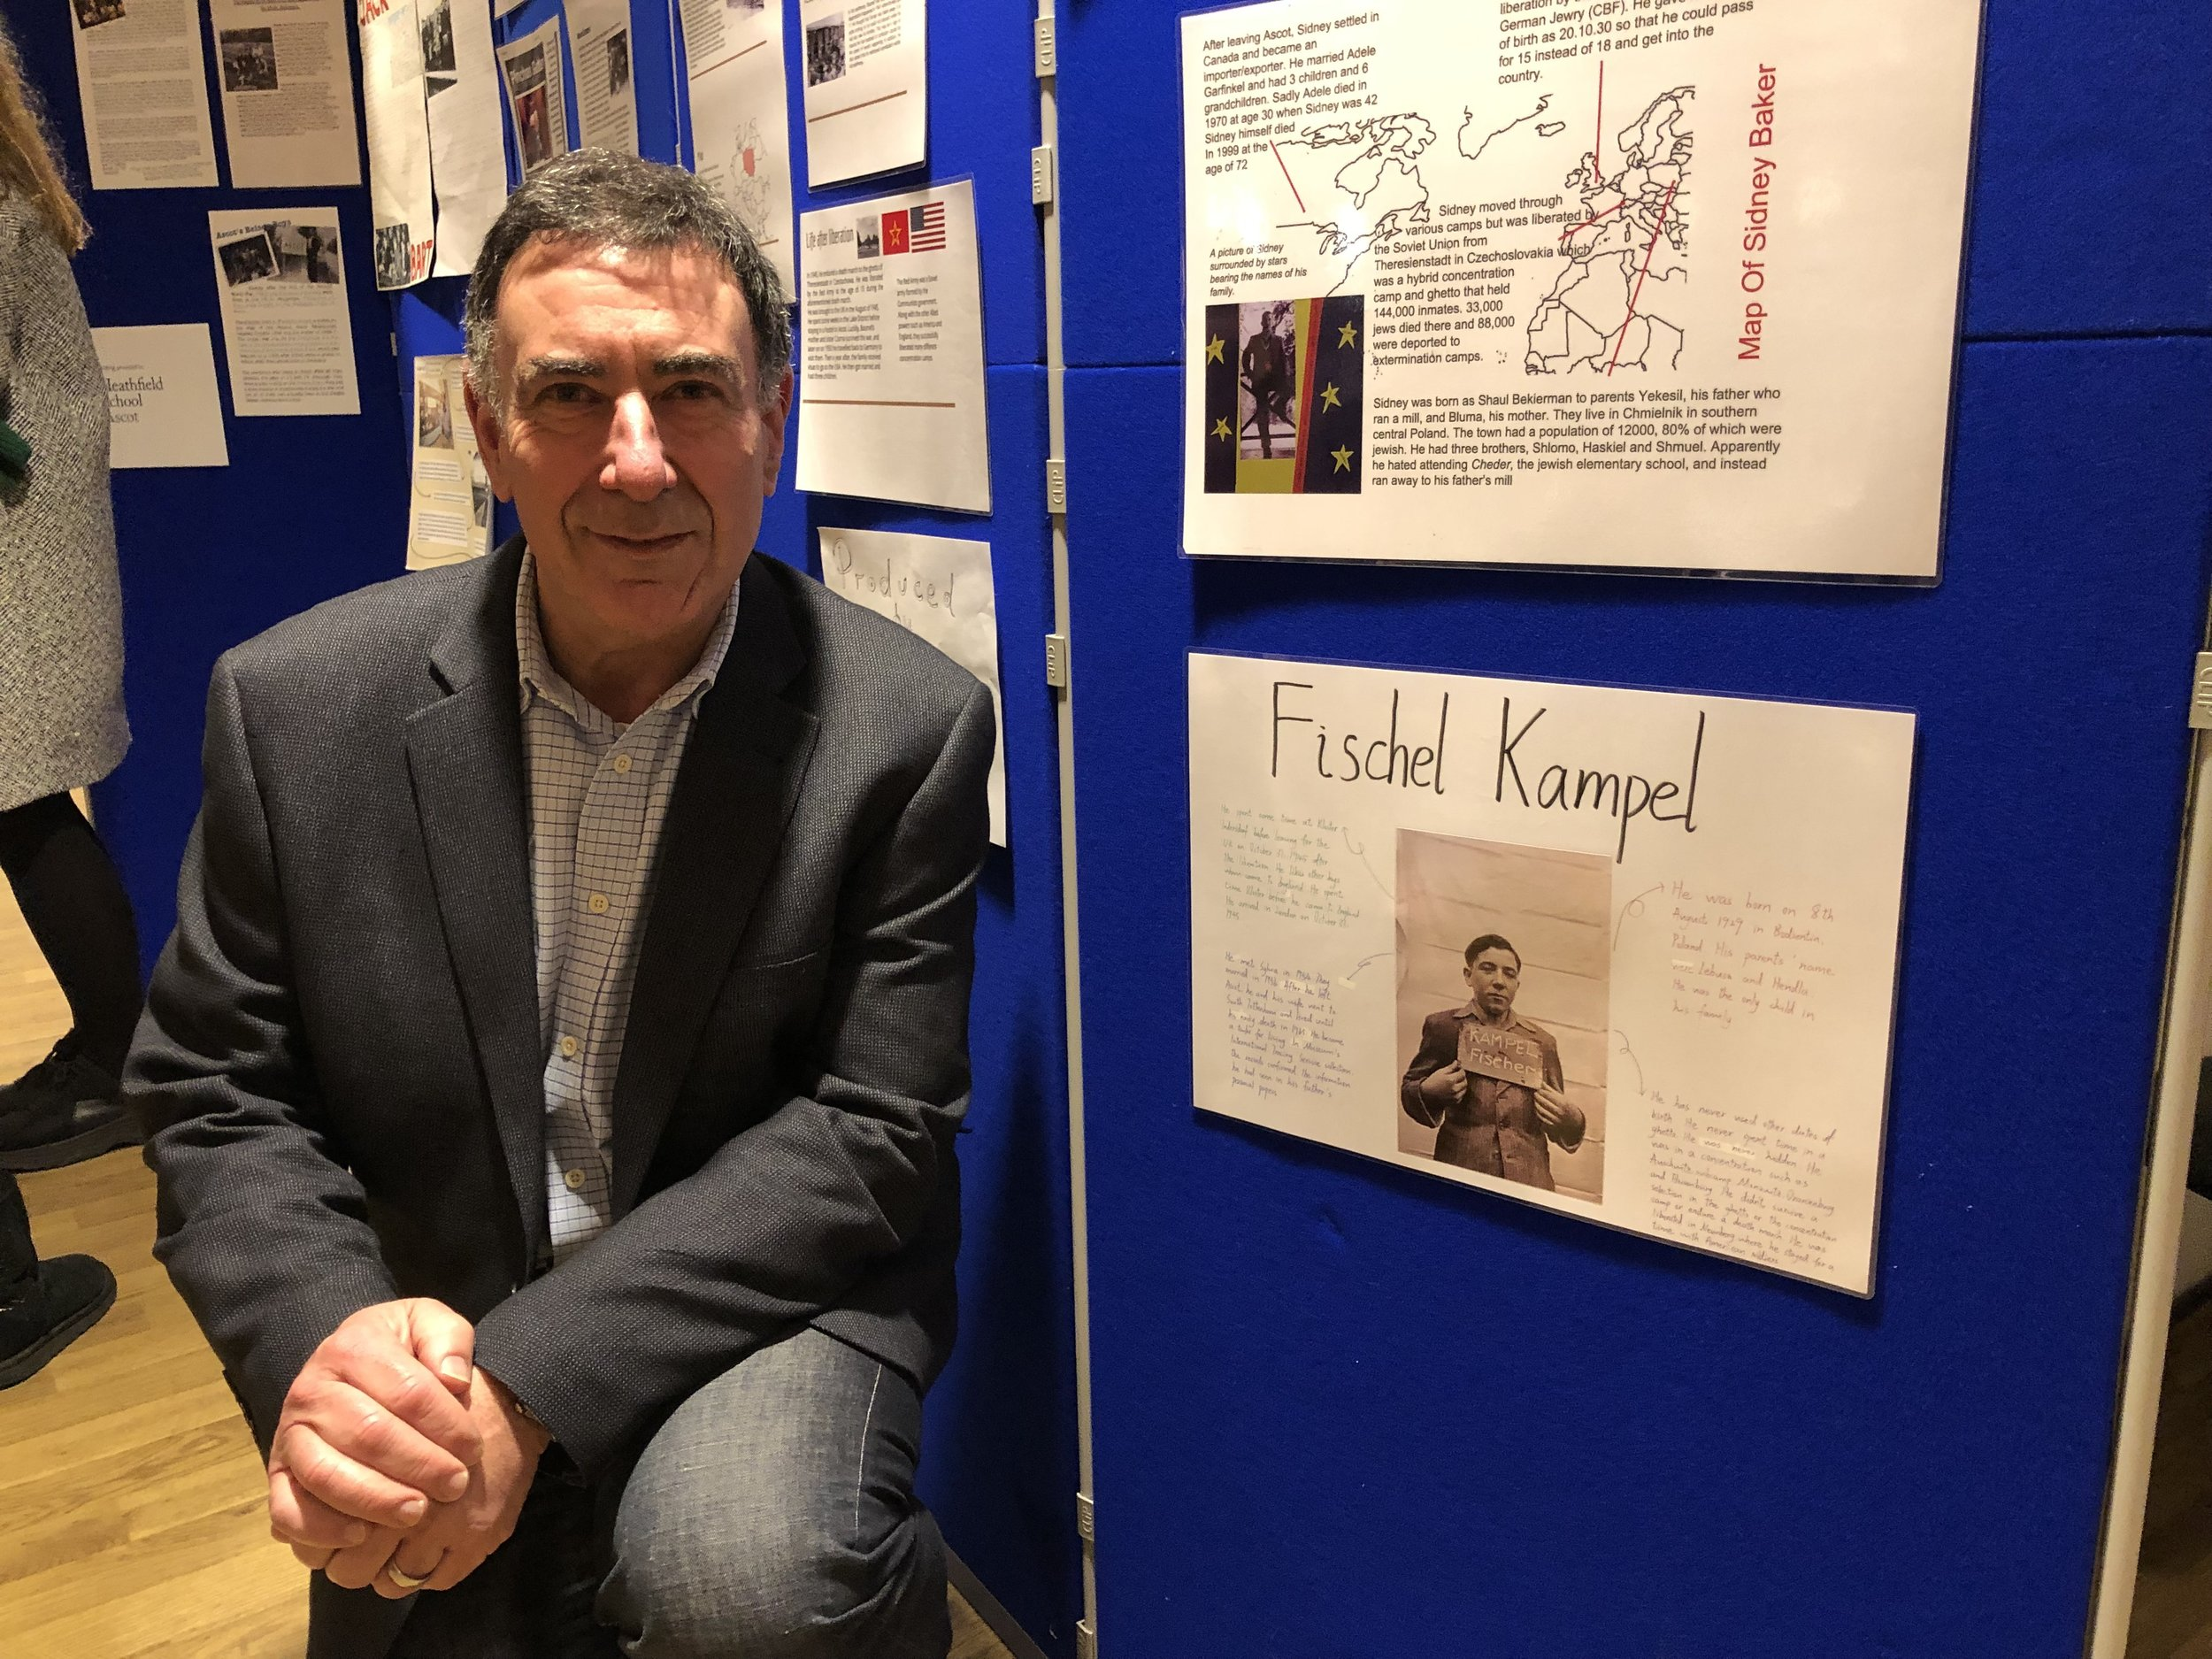 This is Lawrence Kampel next to the school project on his father made by one of the girls at St George's School in Ascot.